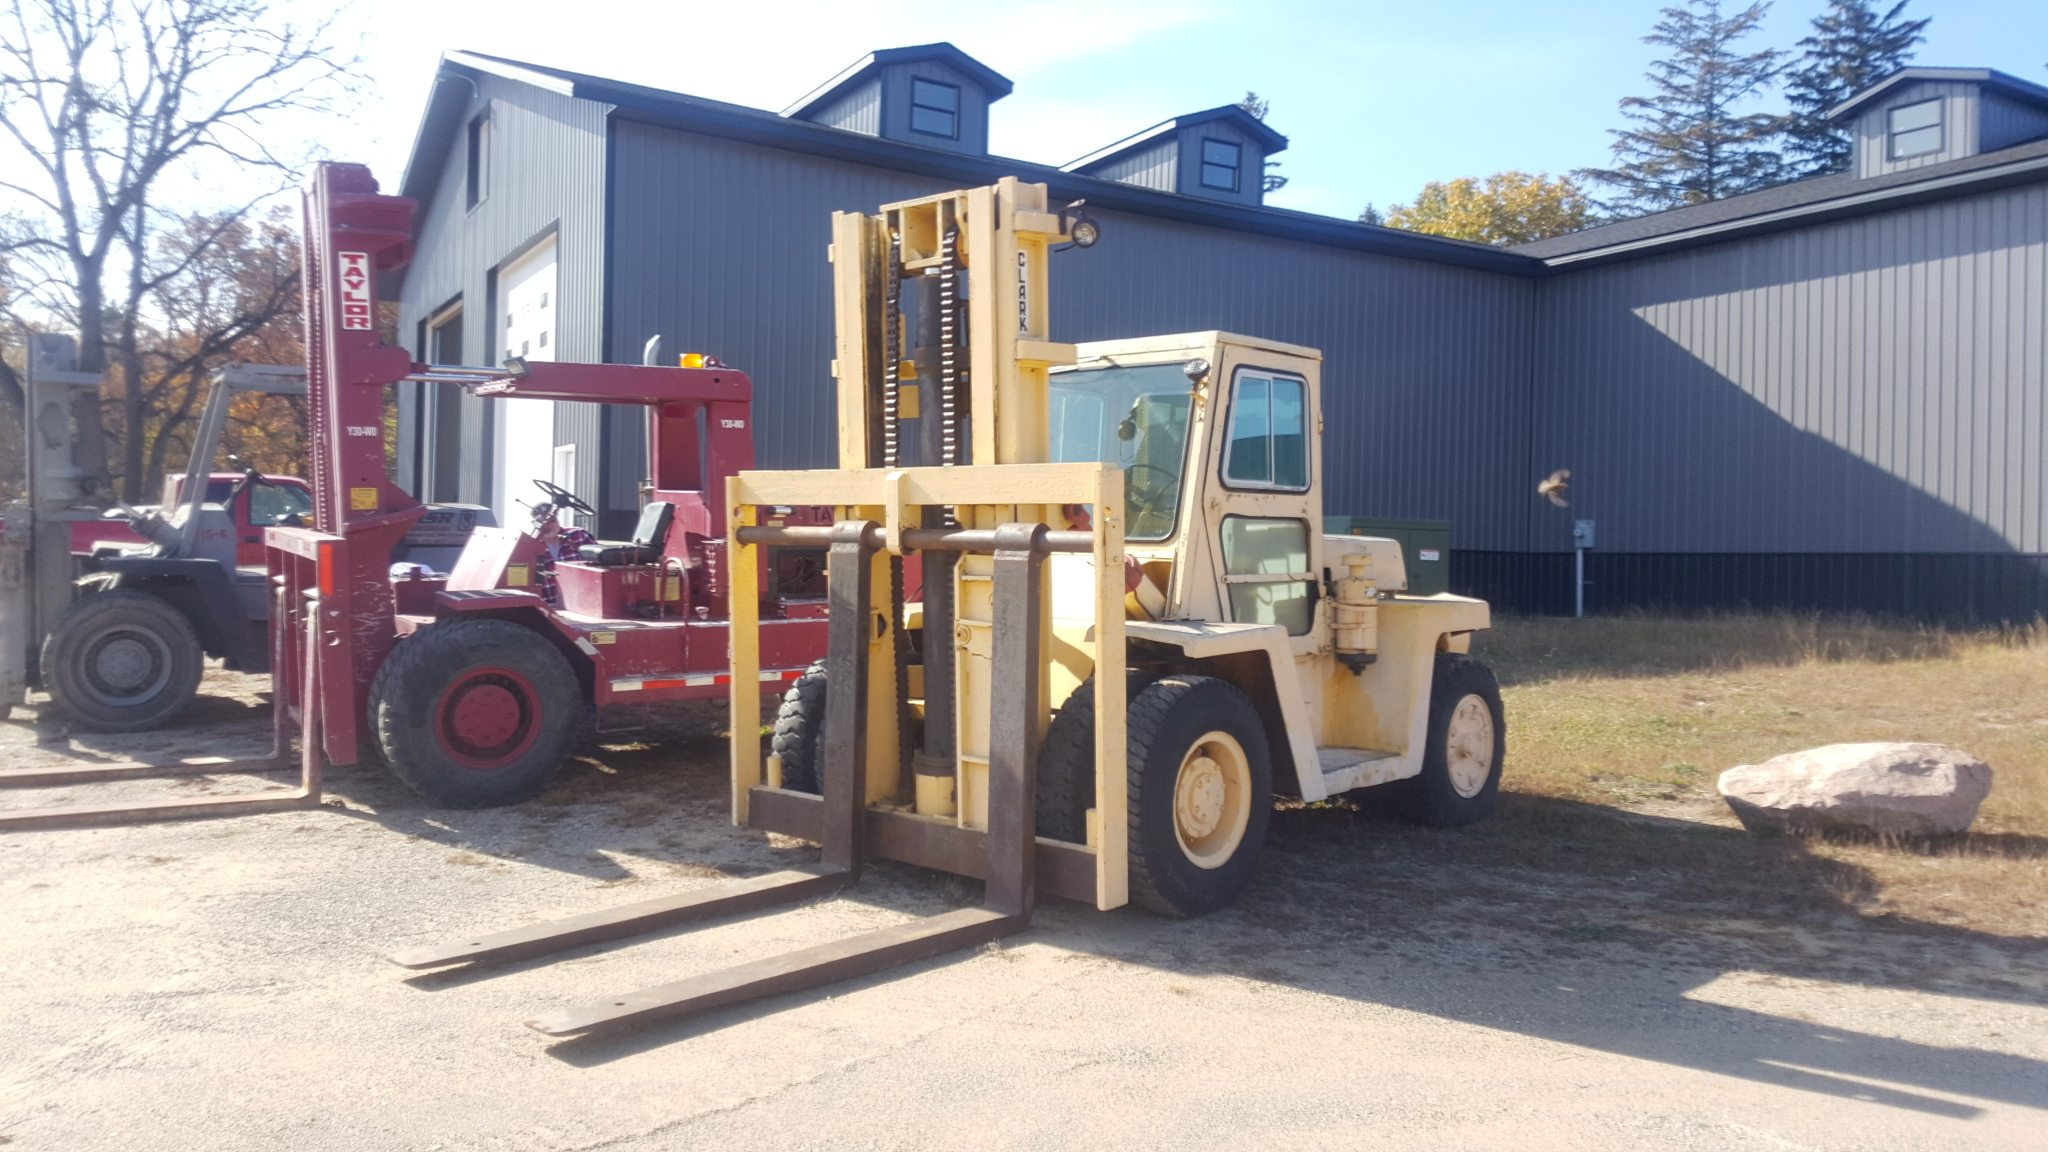 20 000lb Used Clark Forklift For Sale Call 616 200 4308